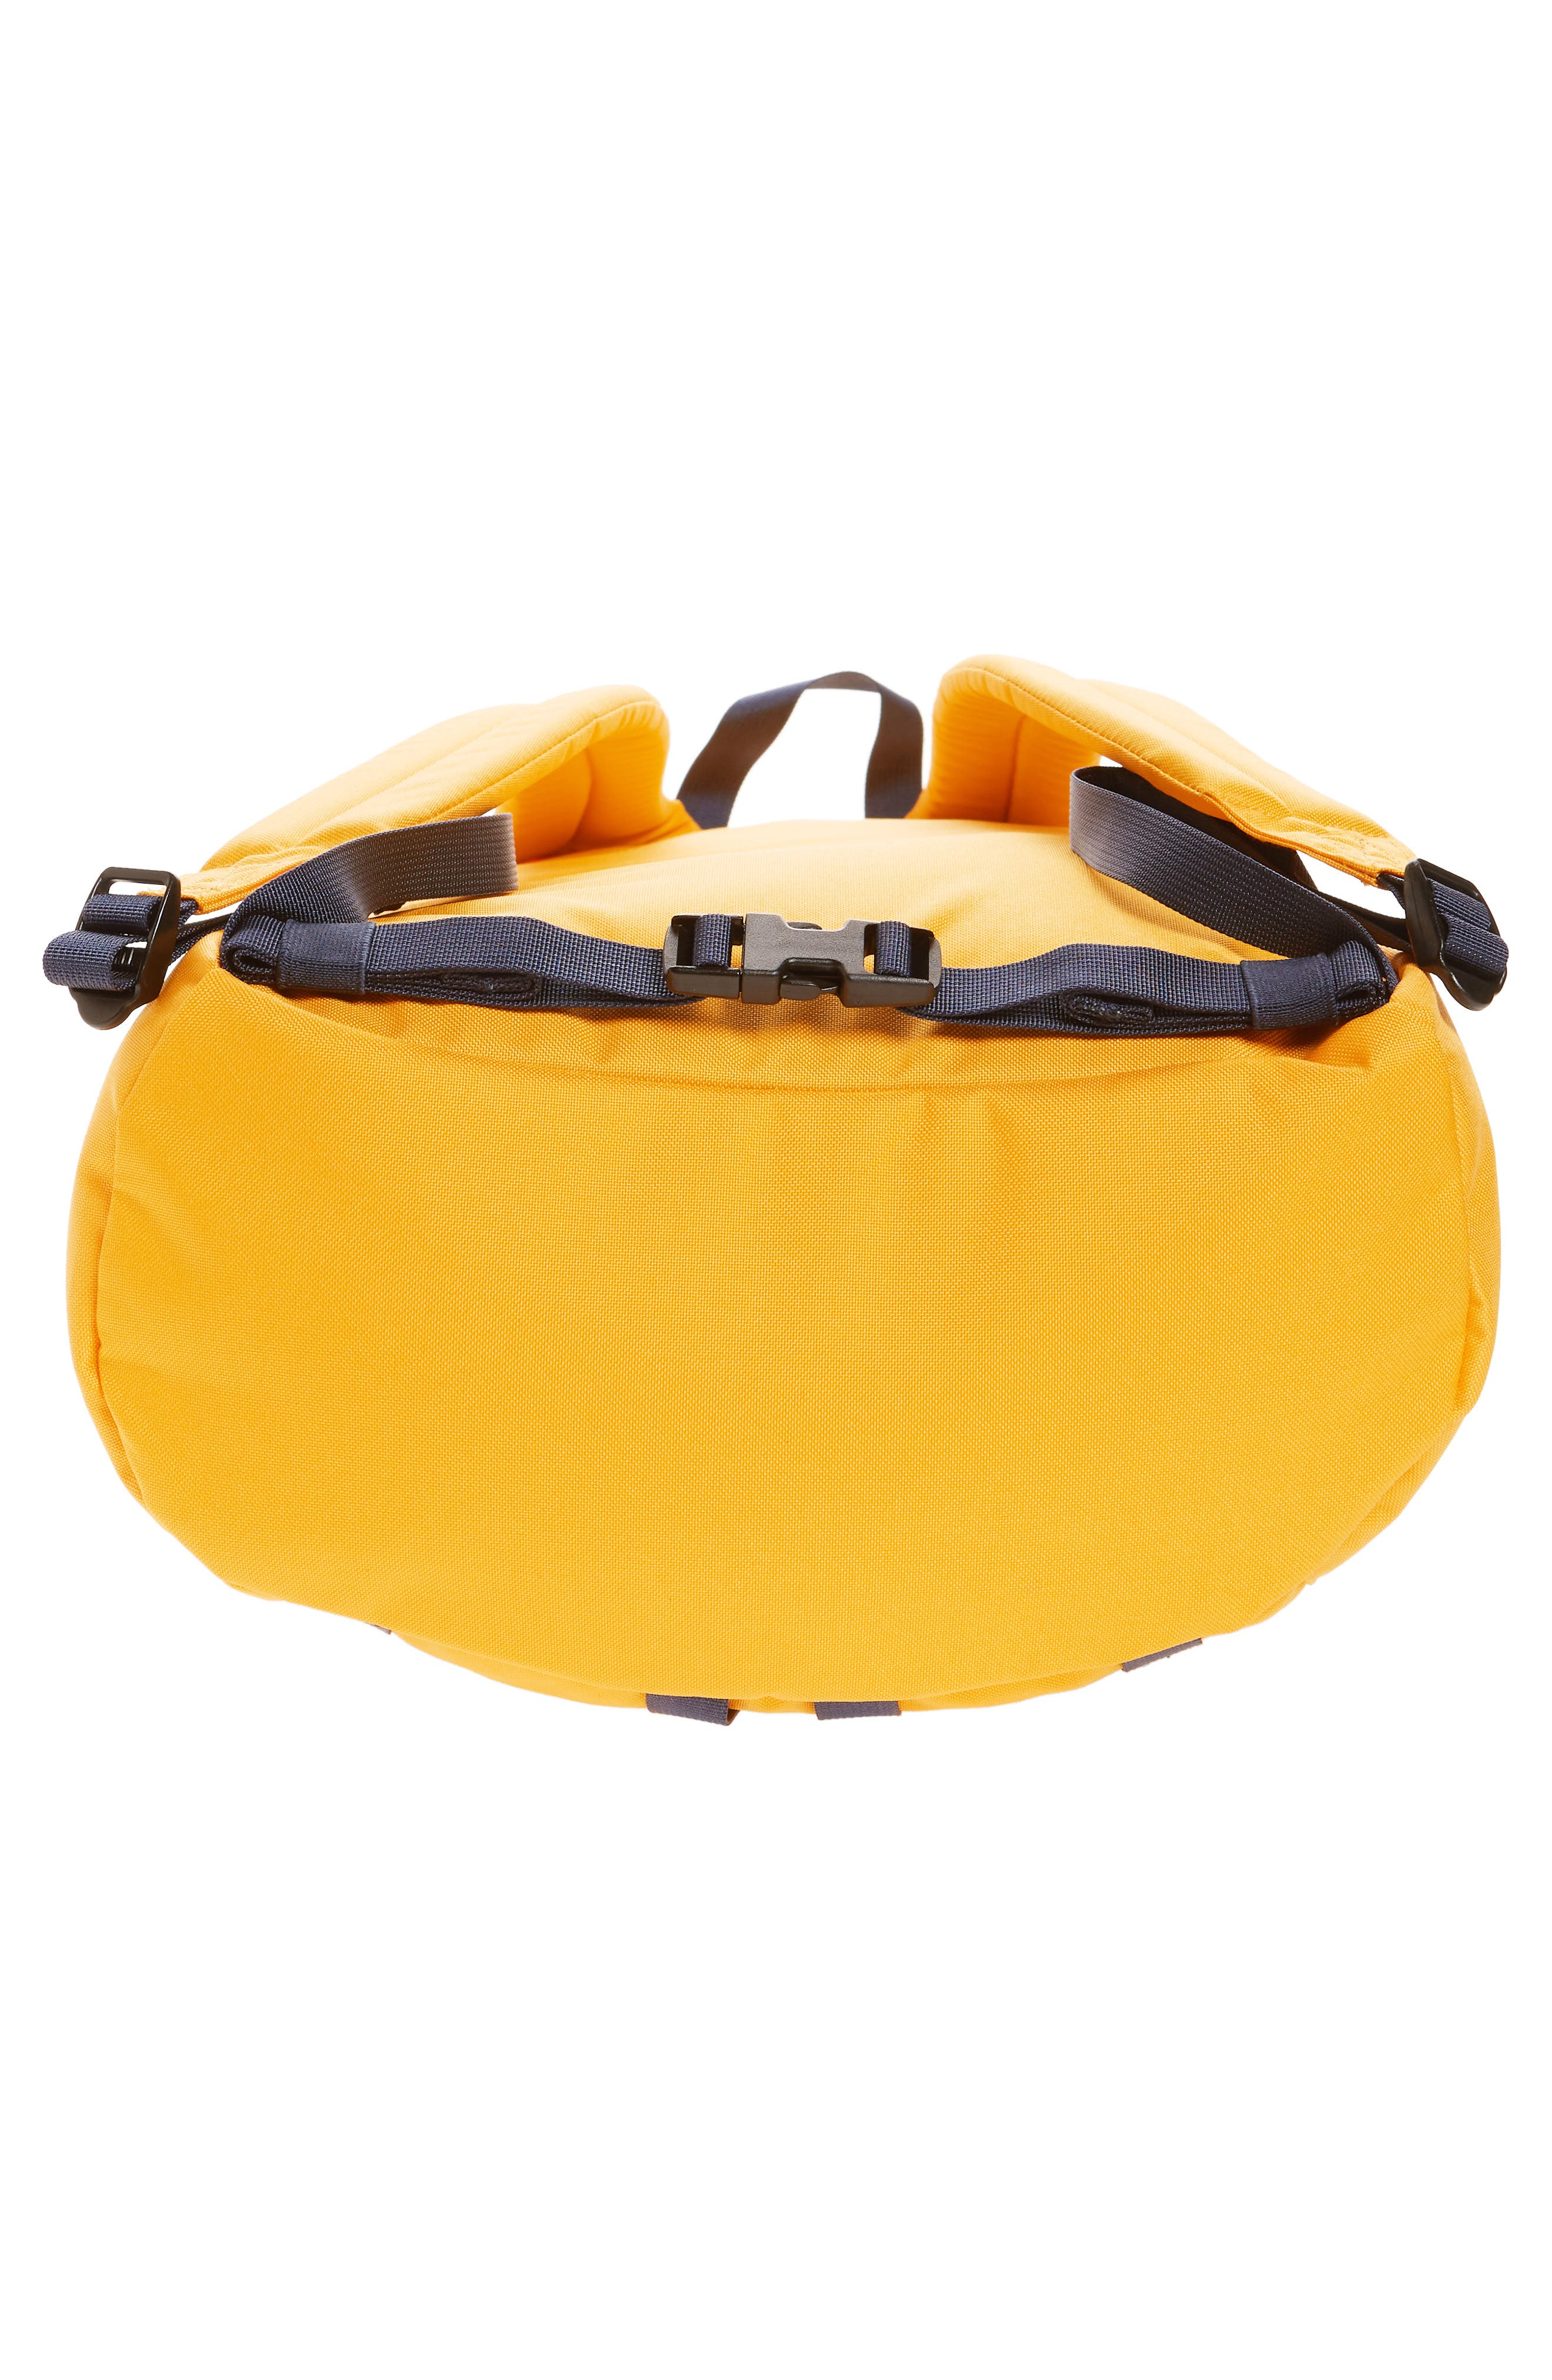 Arbor 26-Liter Backpack,                             Alternate thumbnail 6, color,                             Rugby Yellow